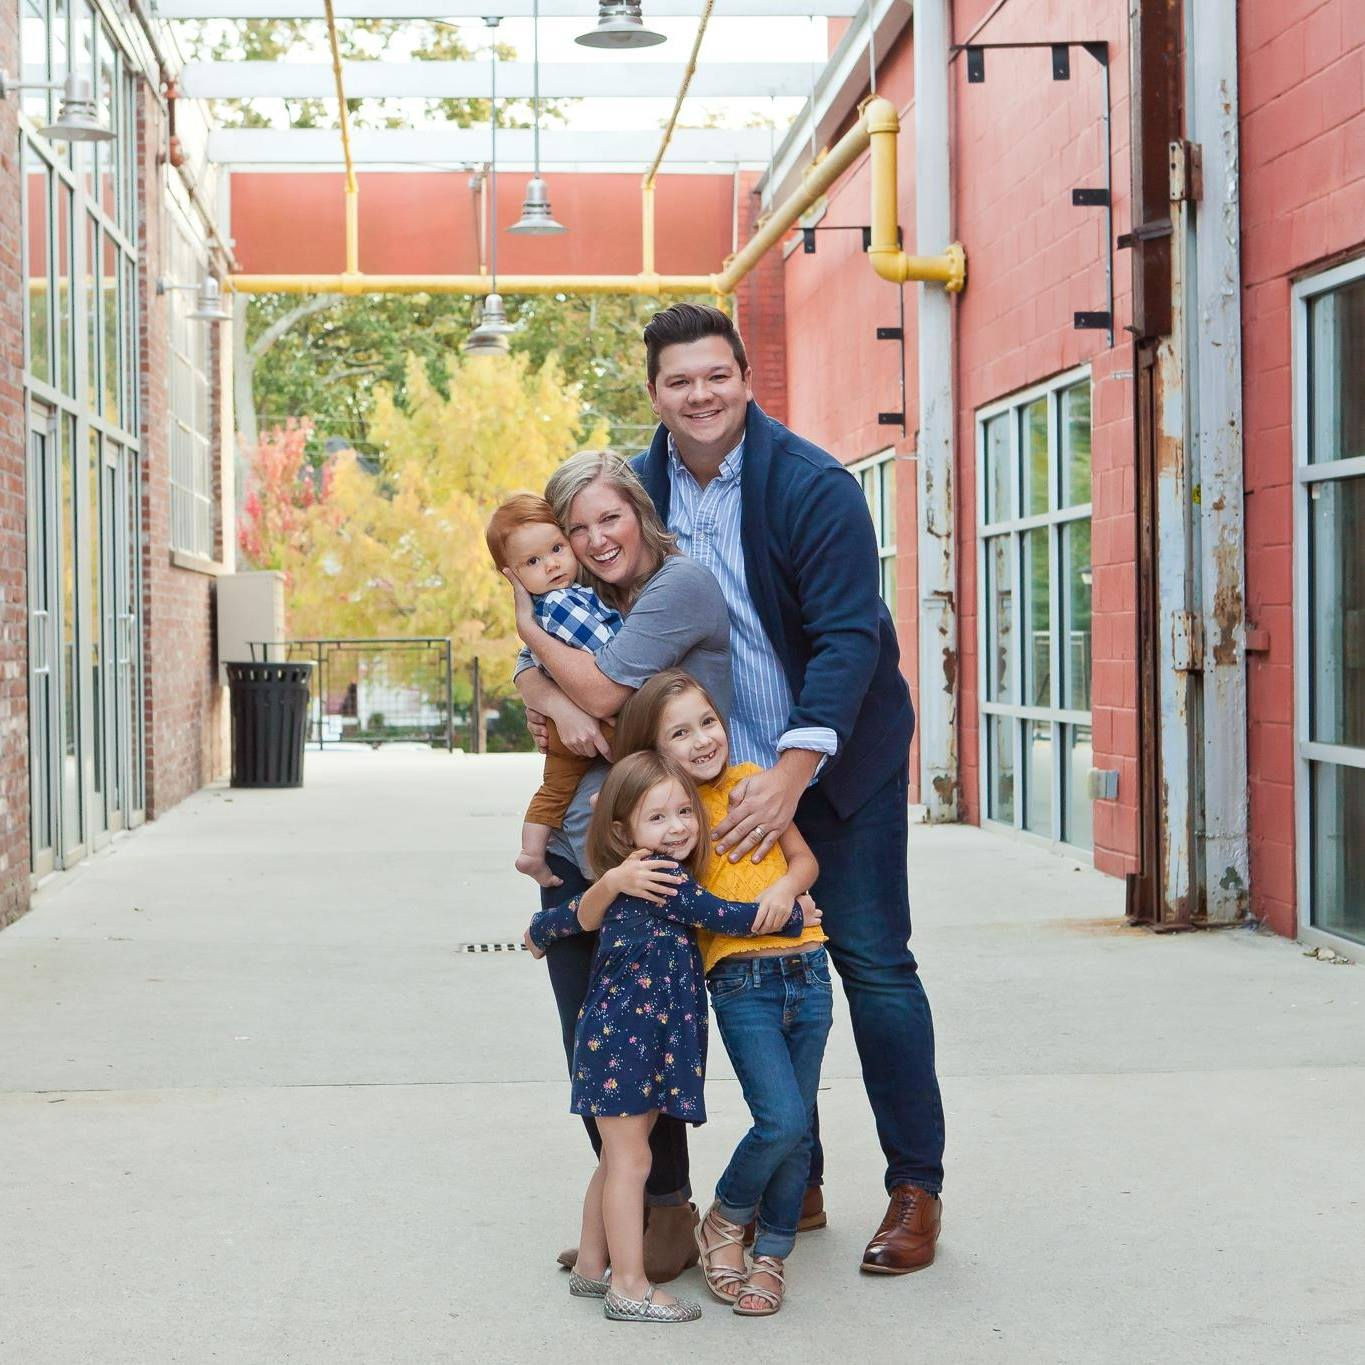 Christian WhiteLead Pastor - Christian attended Southeastern Seminary in North Carolina where he received his Masters in Divinity. Christian, Kimmie, and their kids live in Glenwood Park.To connect with the Whites, you can email:Christian@parksideatl.comKimmie@parksideatl.com